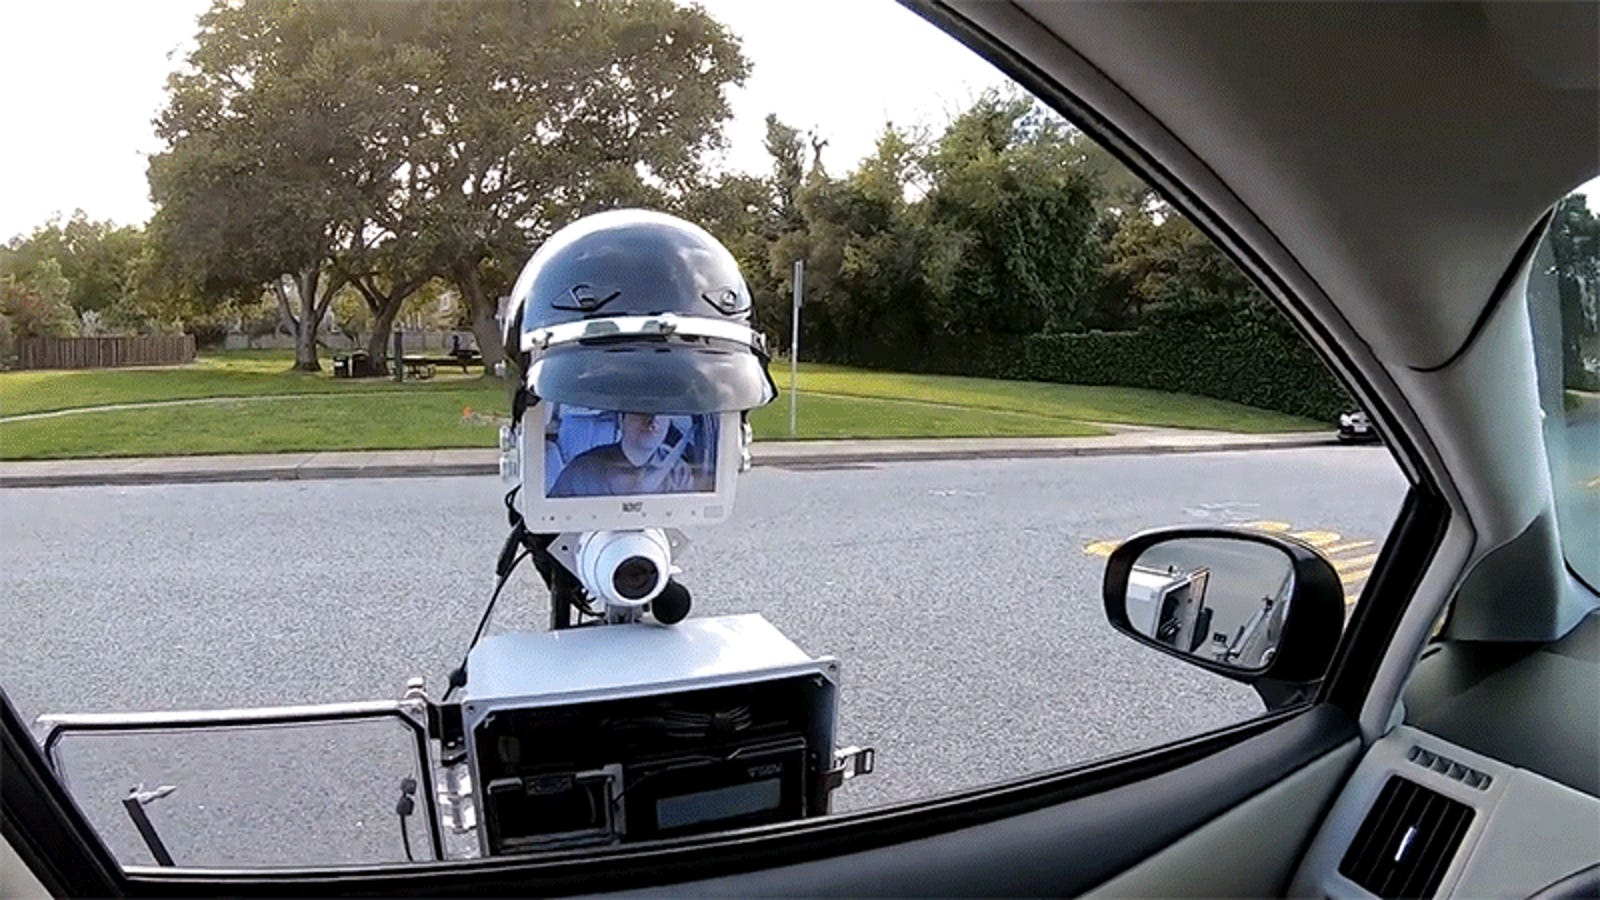 Cops on patrol may be able to work remotely thanks to tablet on a stick.